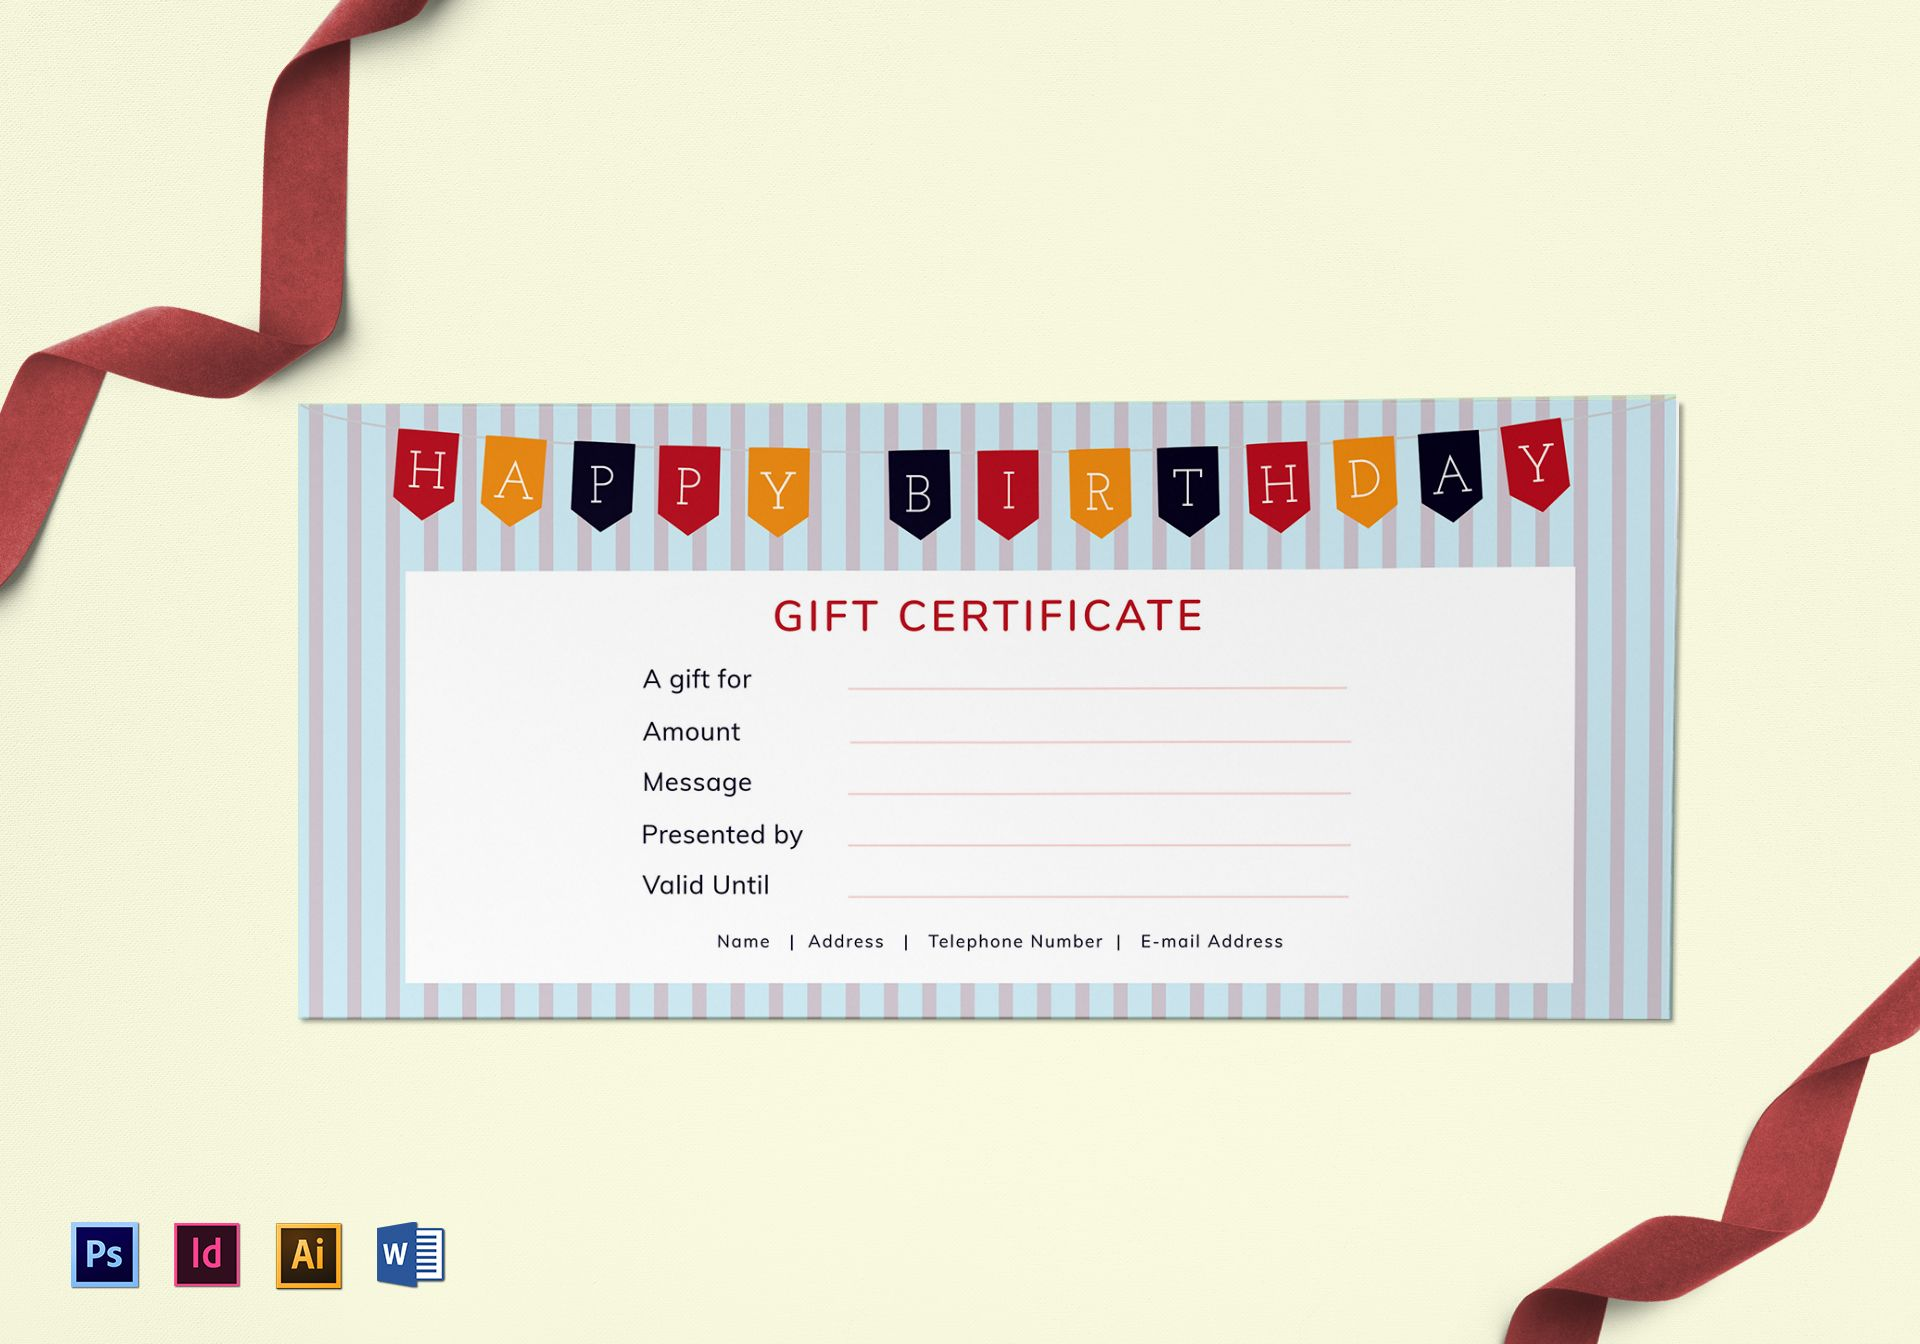 happy birthday gift certificate template - Happy Birthday Gift Card